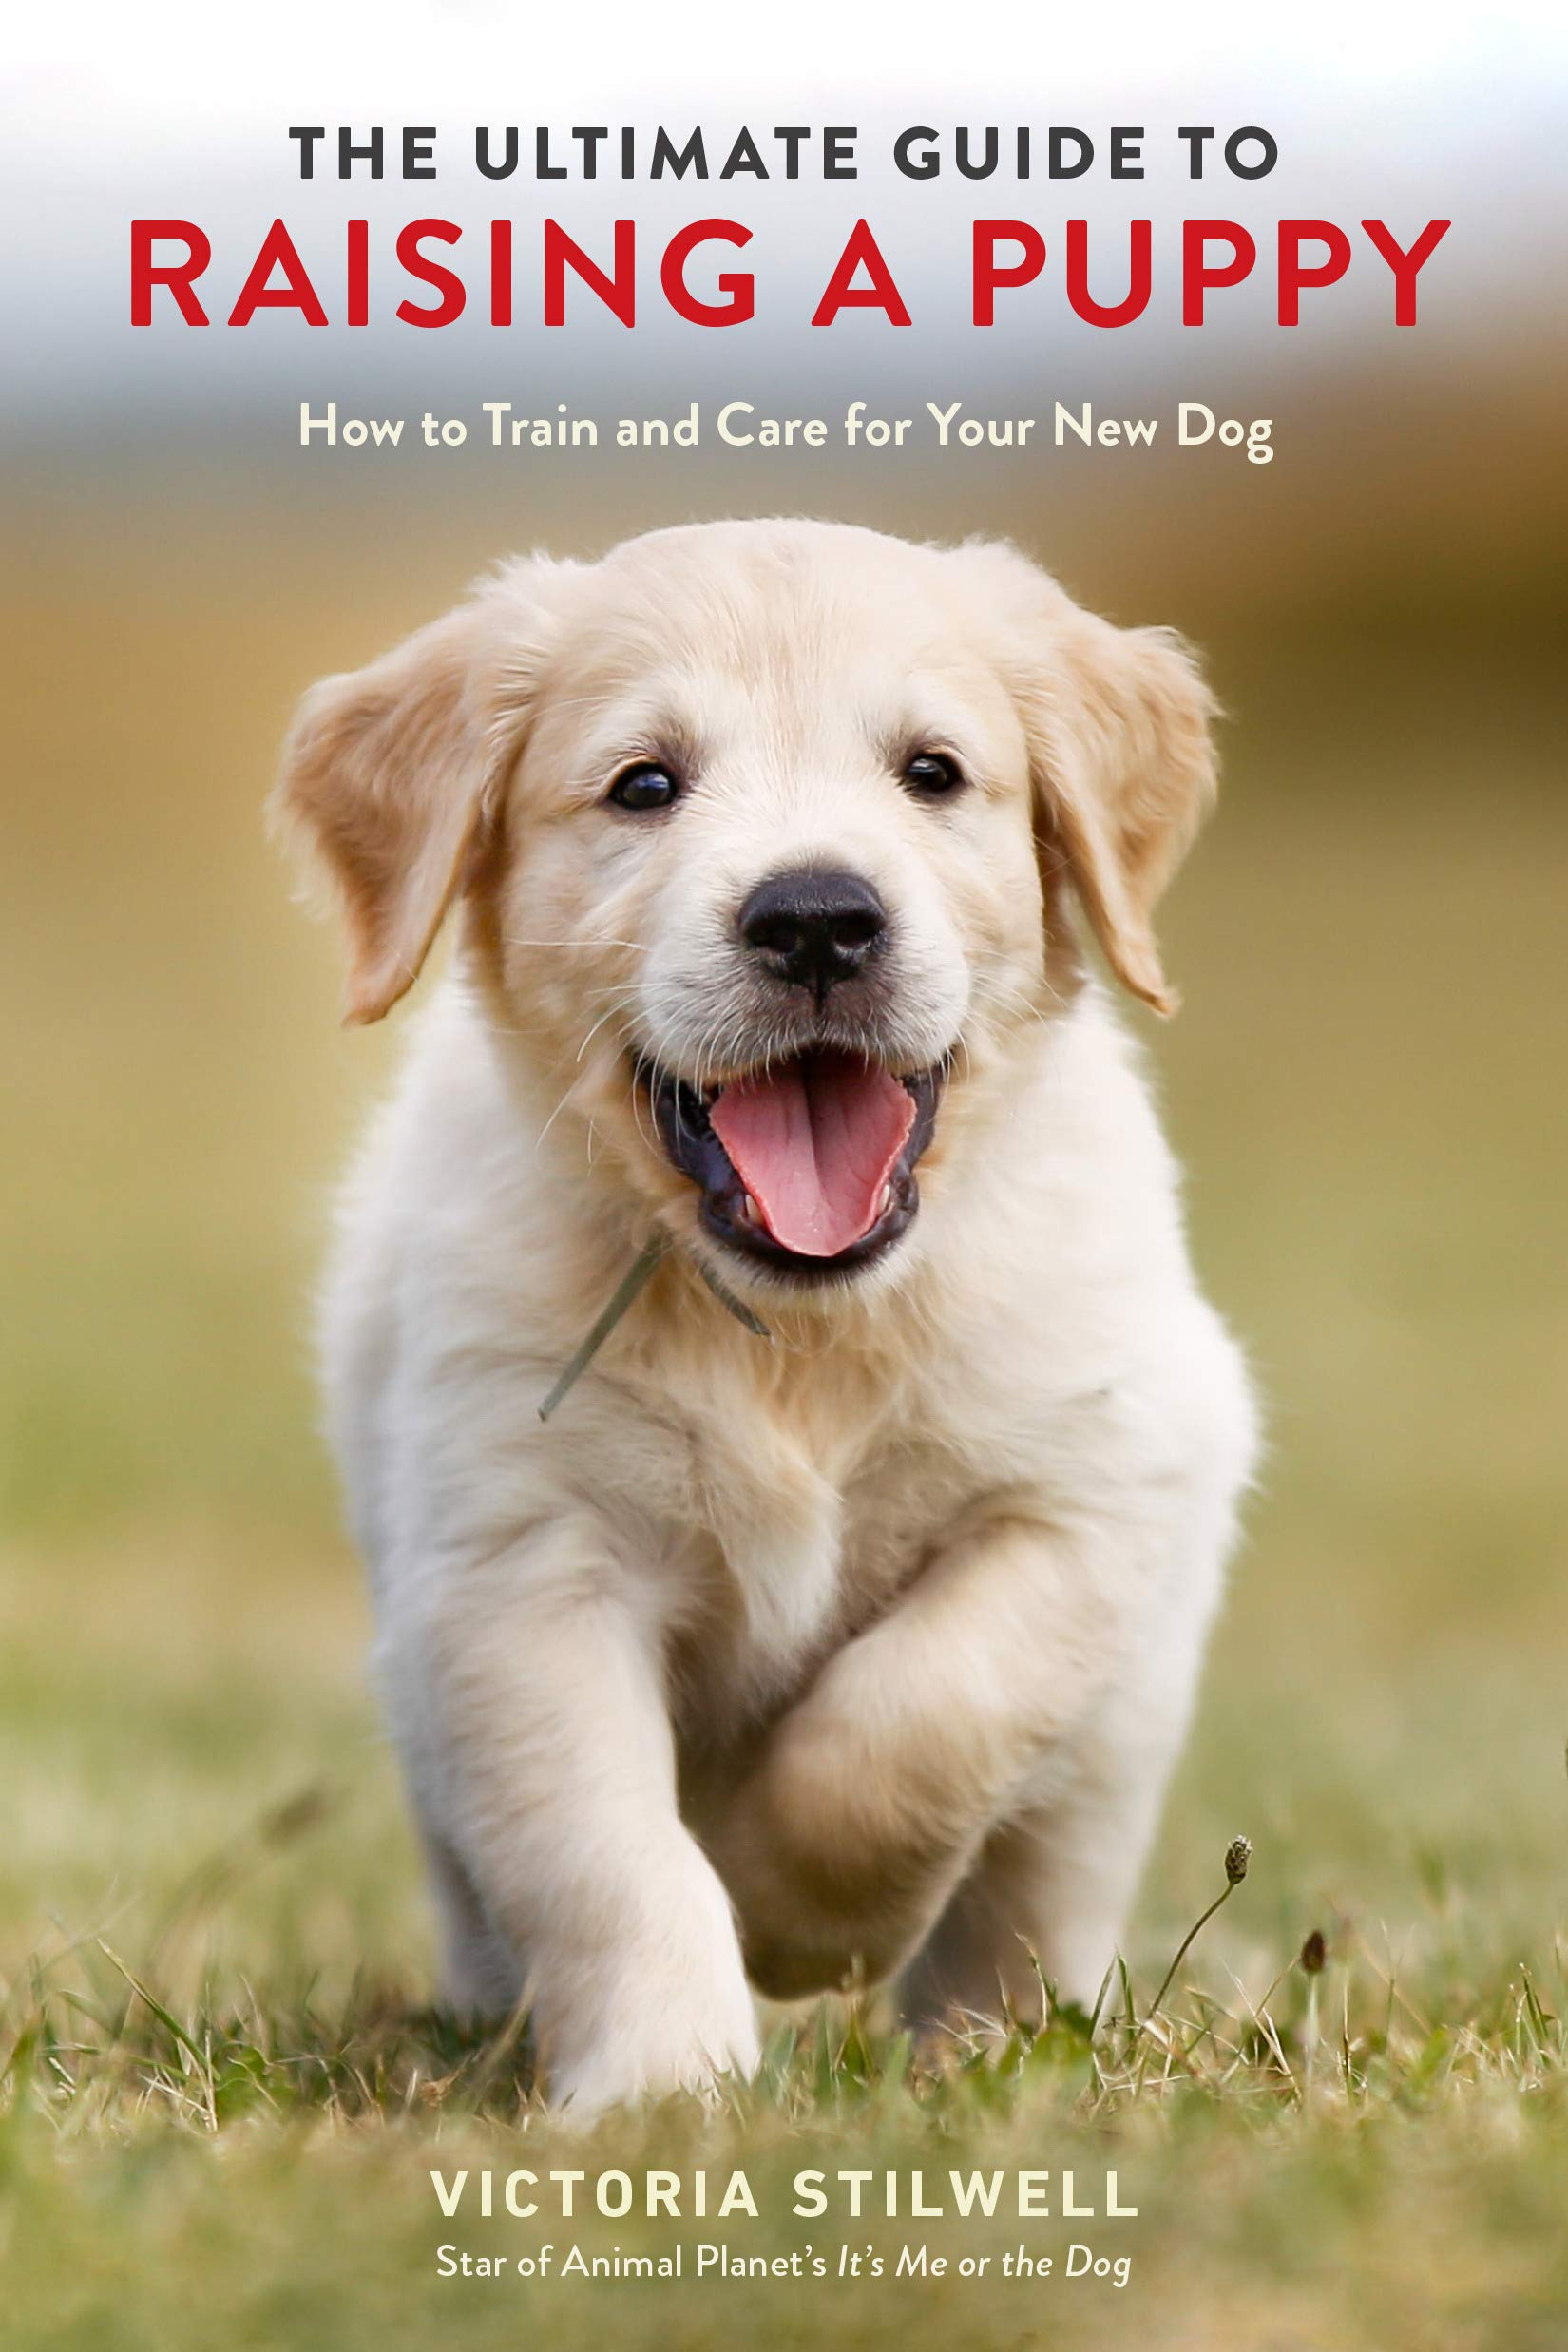 The Ultimate Guide to Raising a Puppy: How to Train and Care for Your New Dog by Ten Speed Press